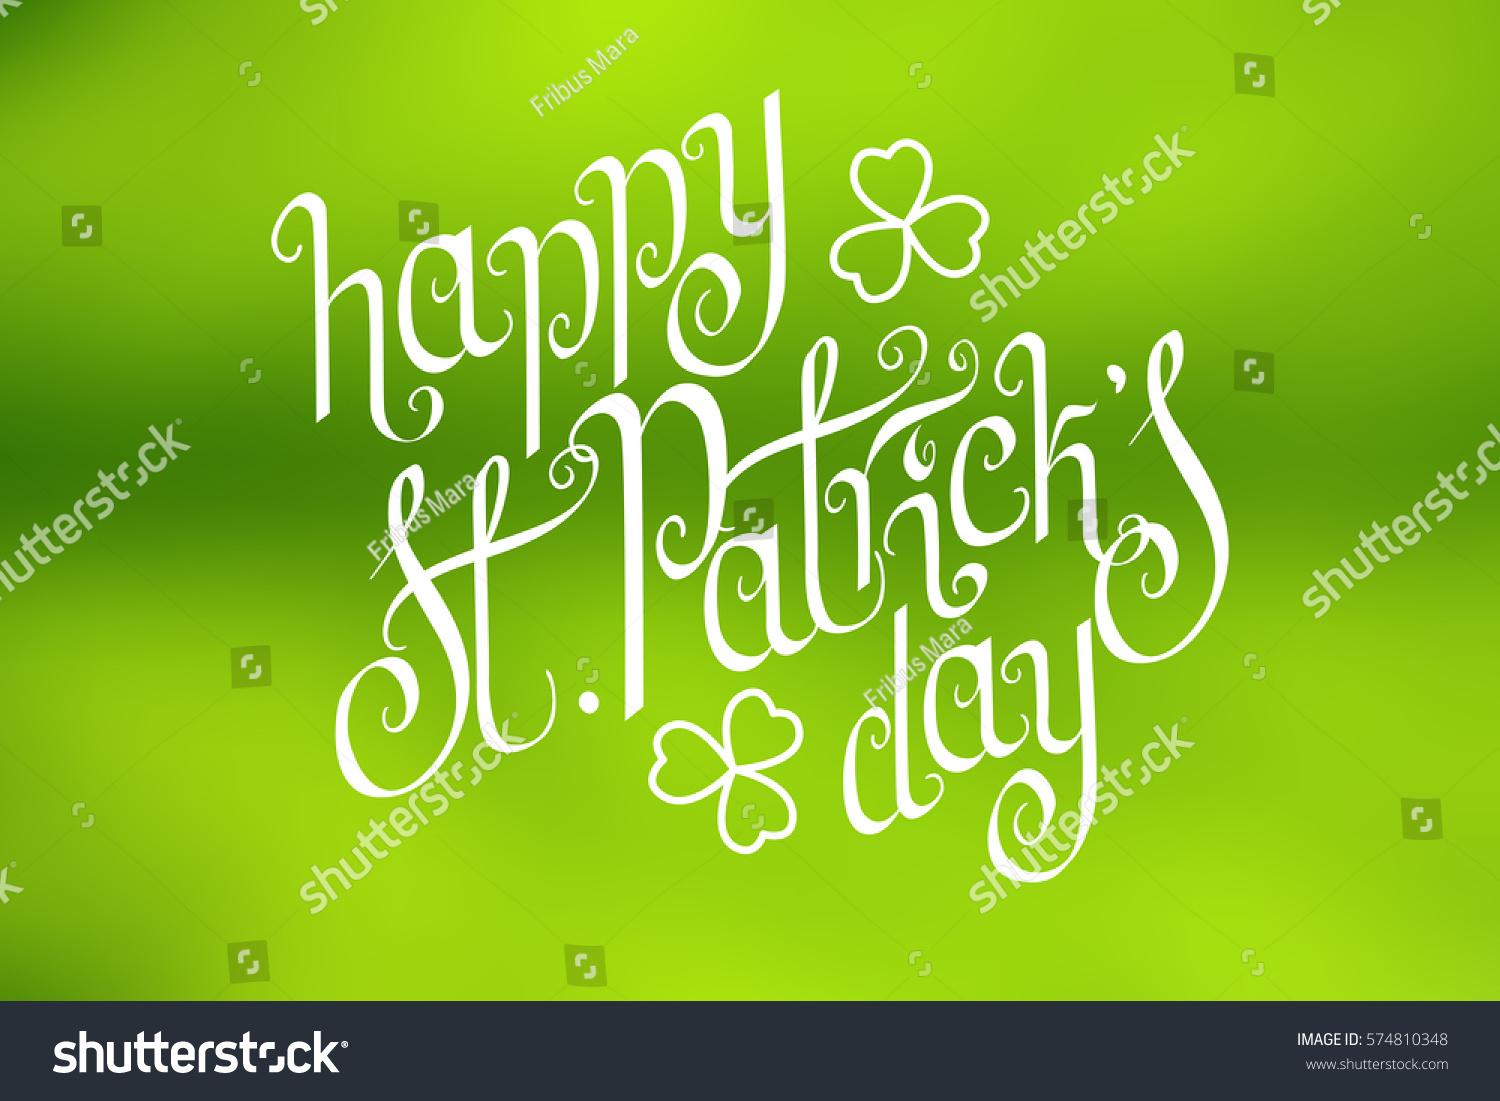 Hand Written St Patricks Day Greetings Over Horizontal Abstract